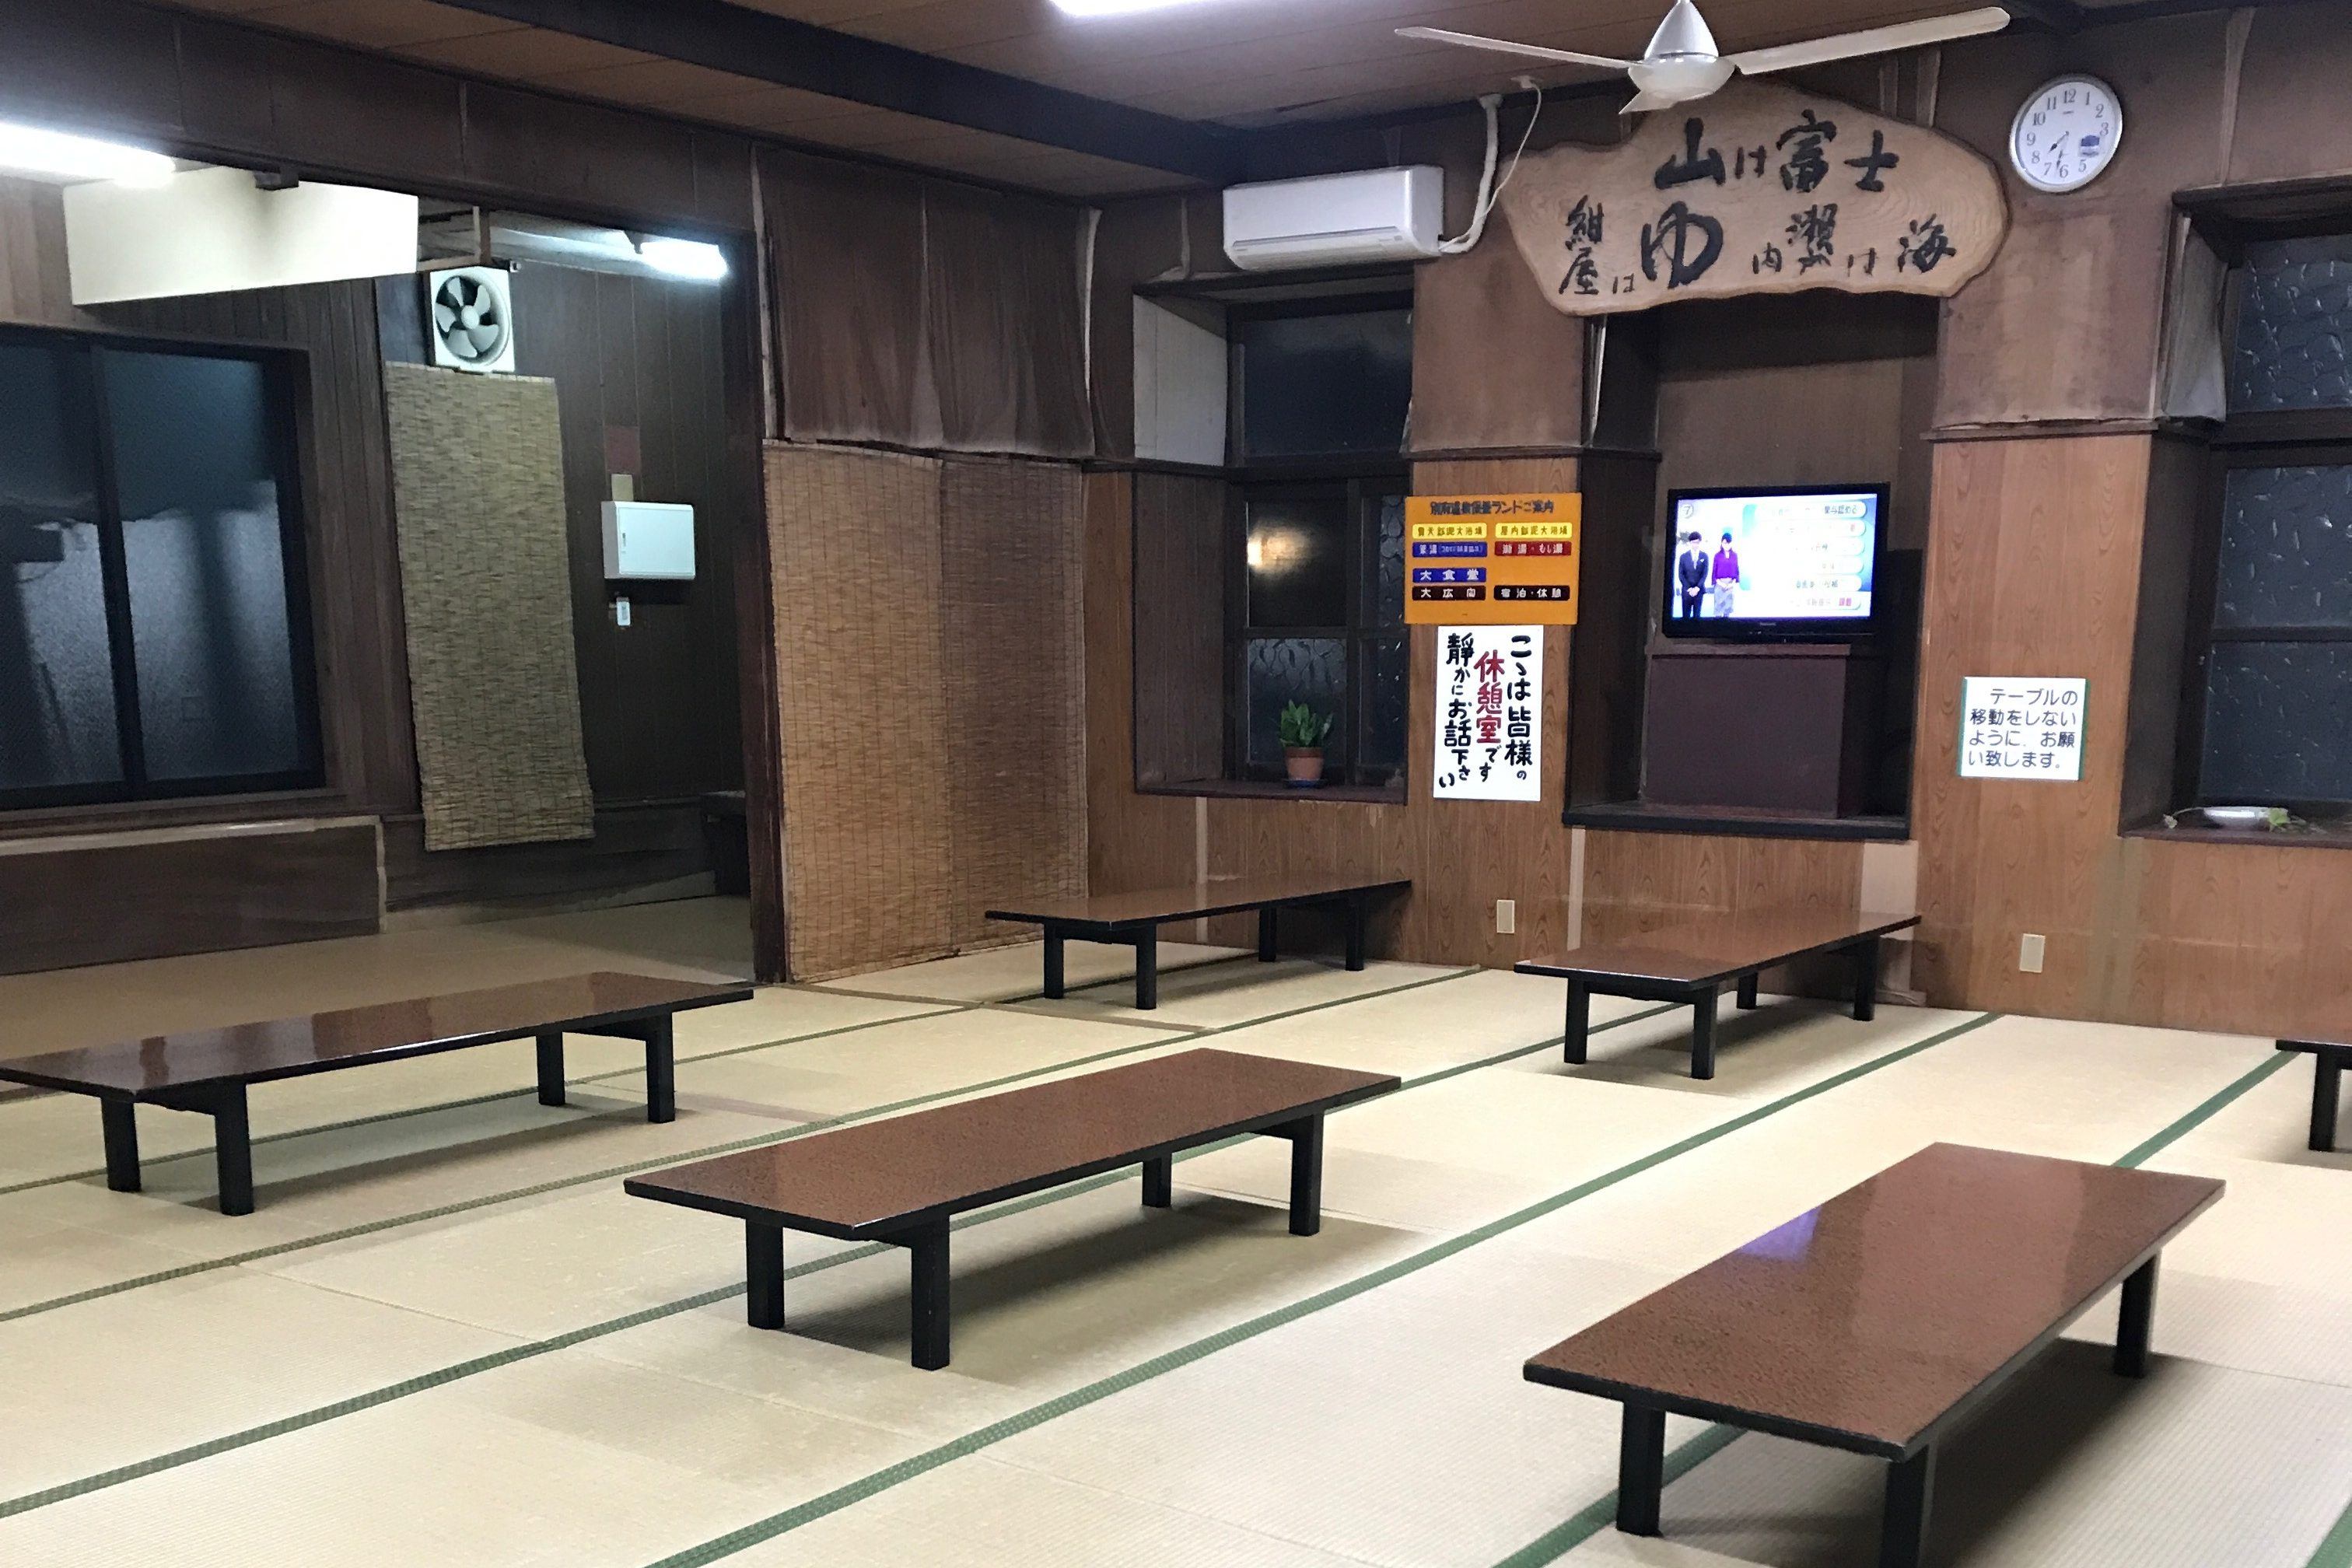 Picture of an inner room of the onsen